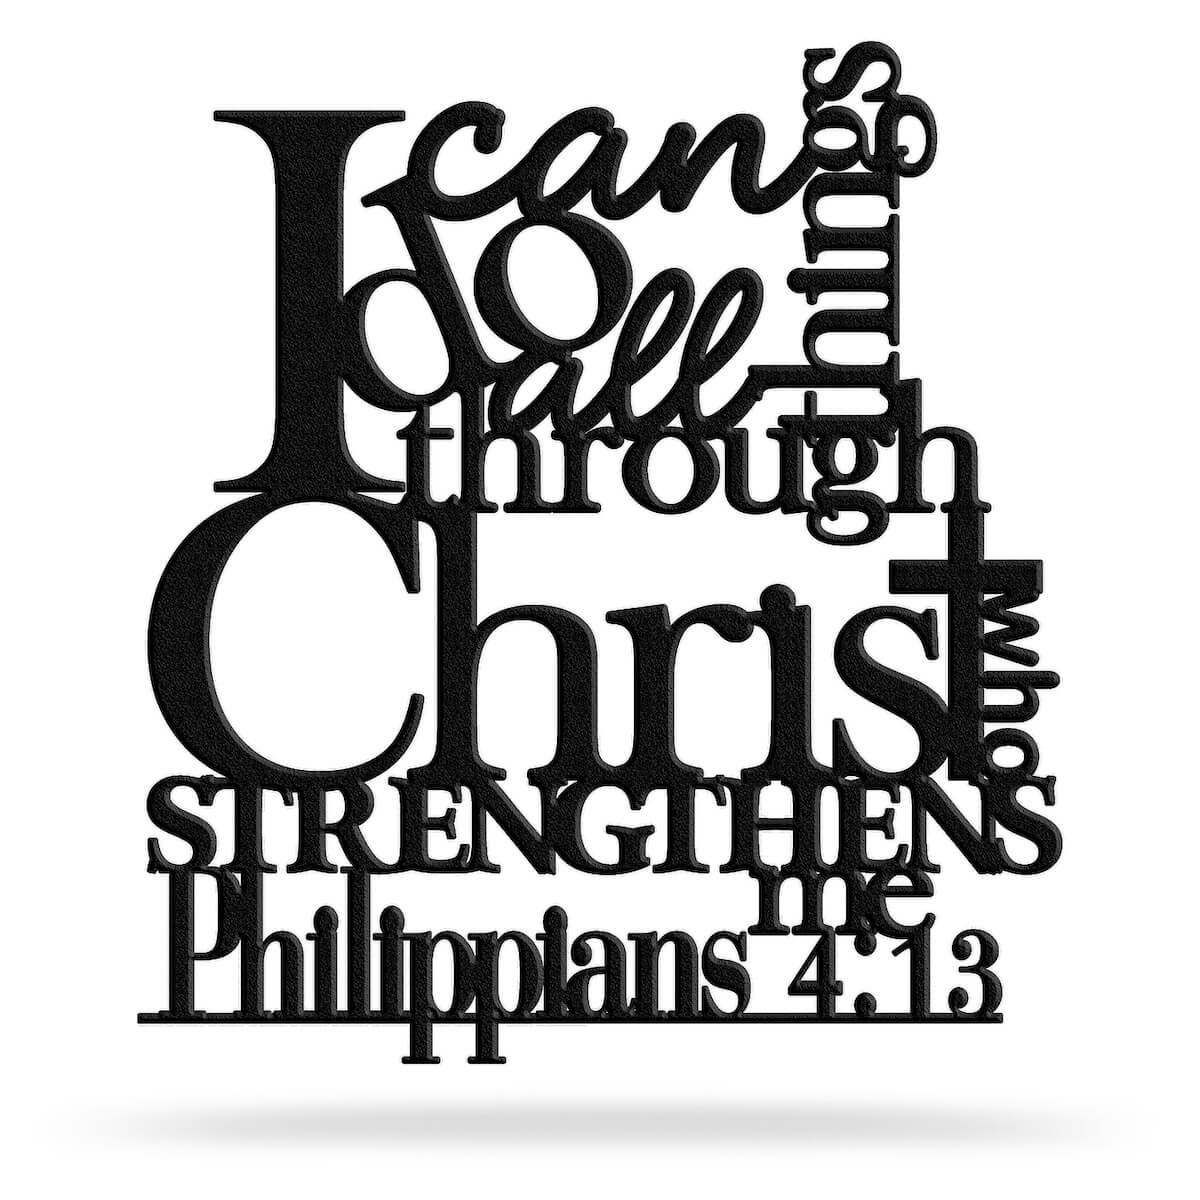 I can do all things through Christ who strengthens me metal art sign Philippians 4:13 Black